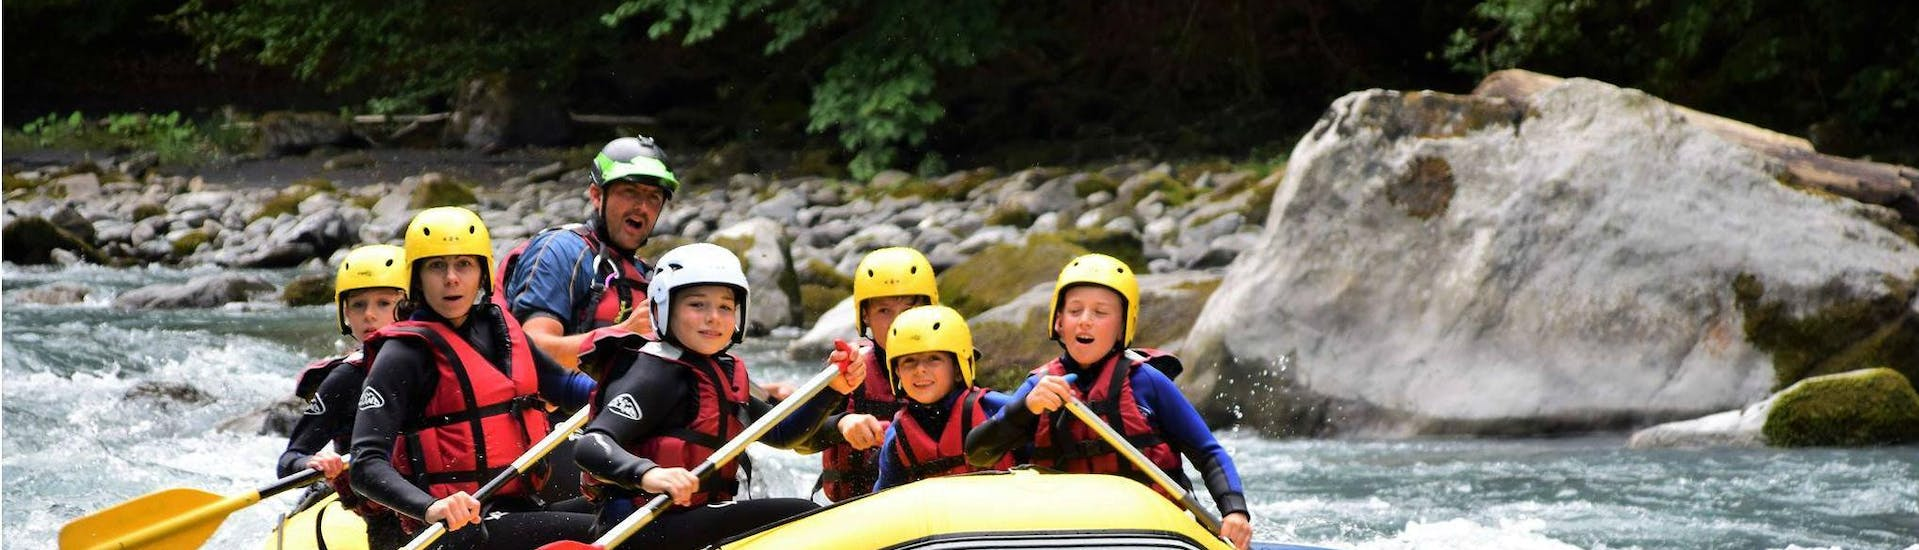 A family is paddling in a beautiful wilderness scenery during their Rafting on Giffre River for Families - Classic with Raft Rider.